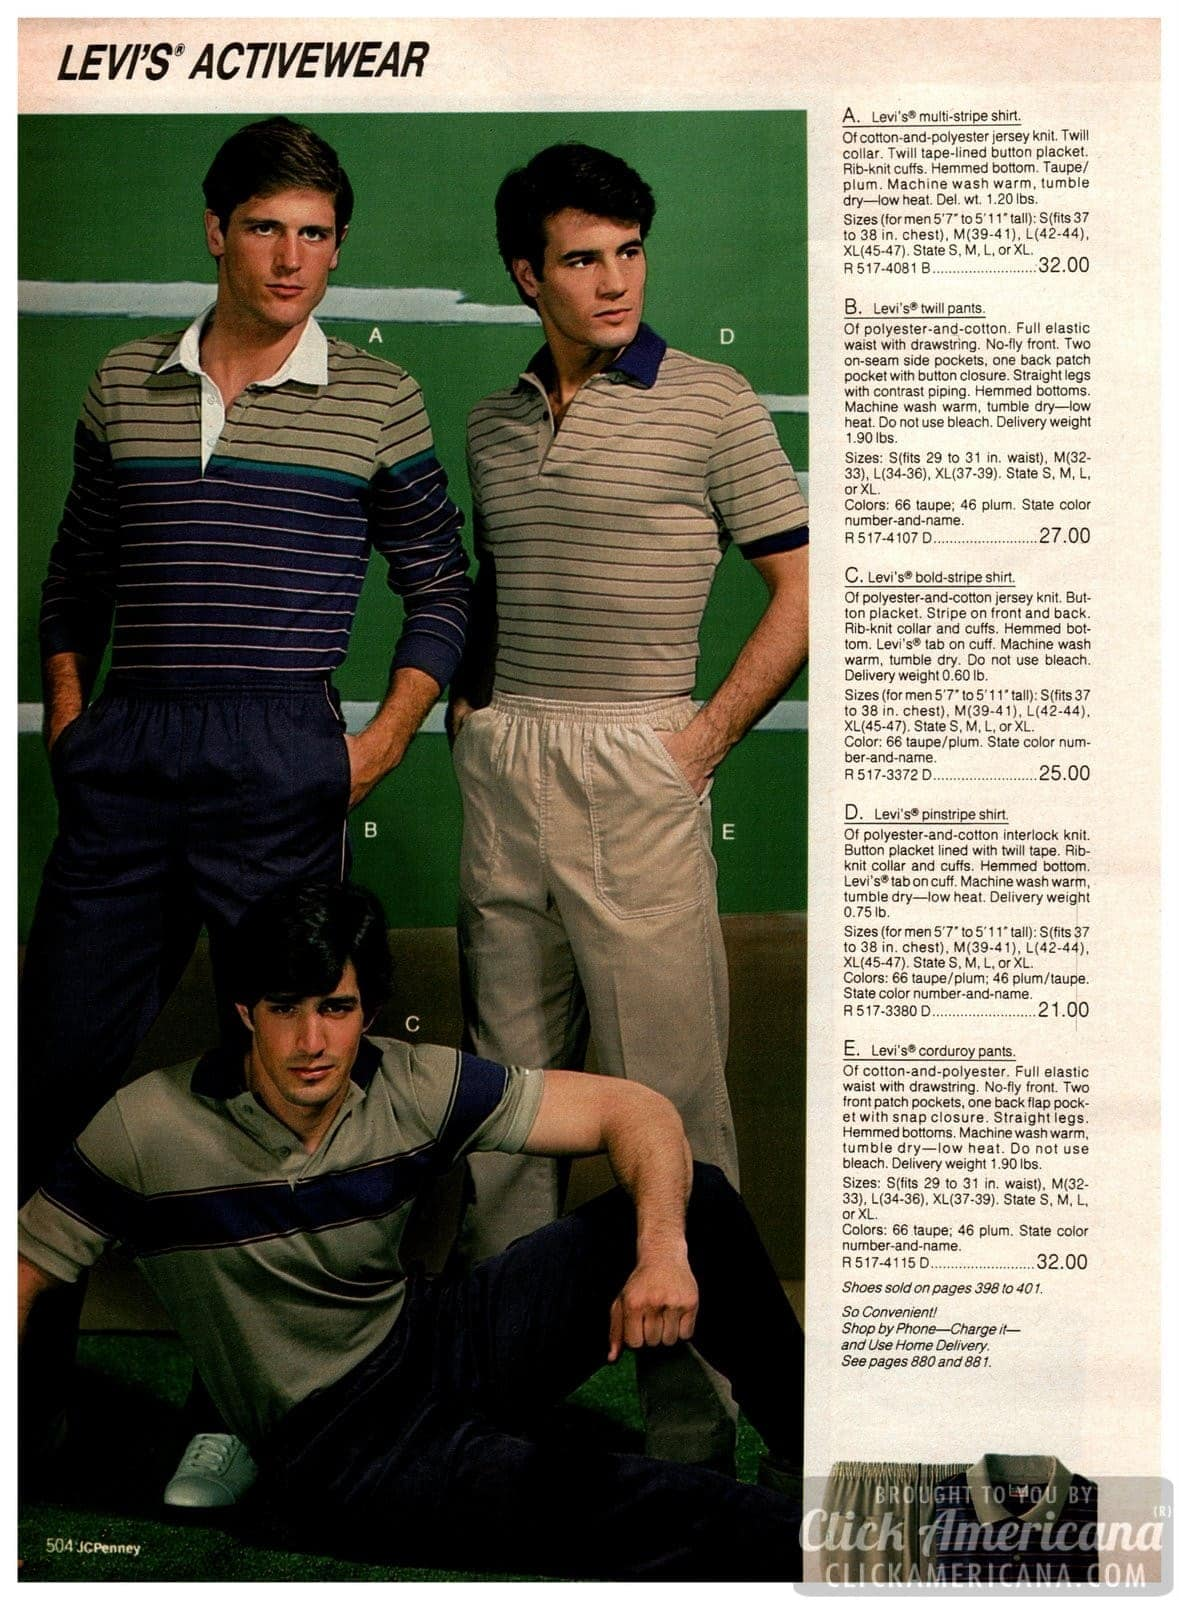 Levi's activewear from the '80s